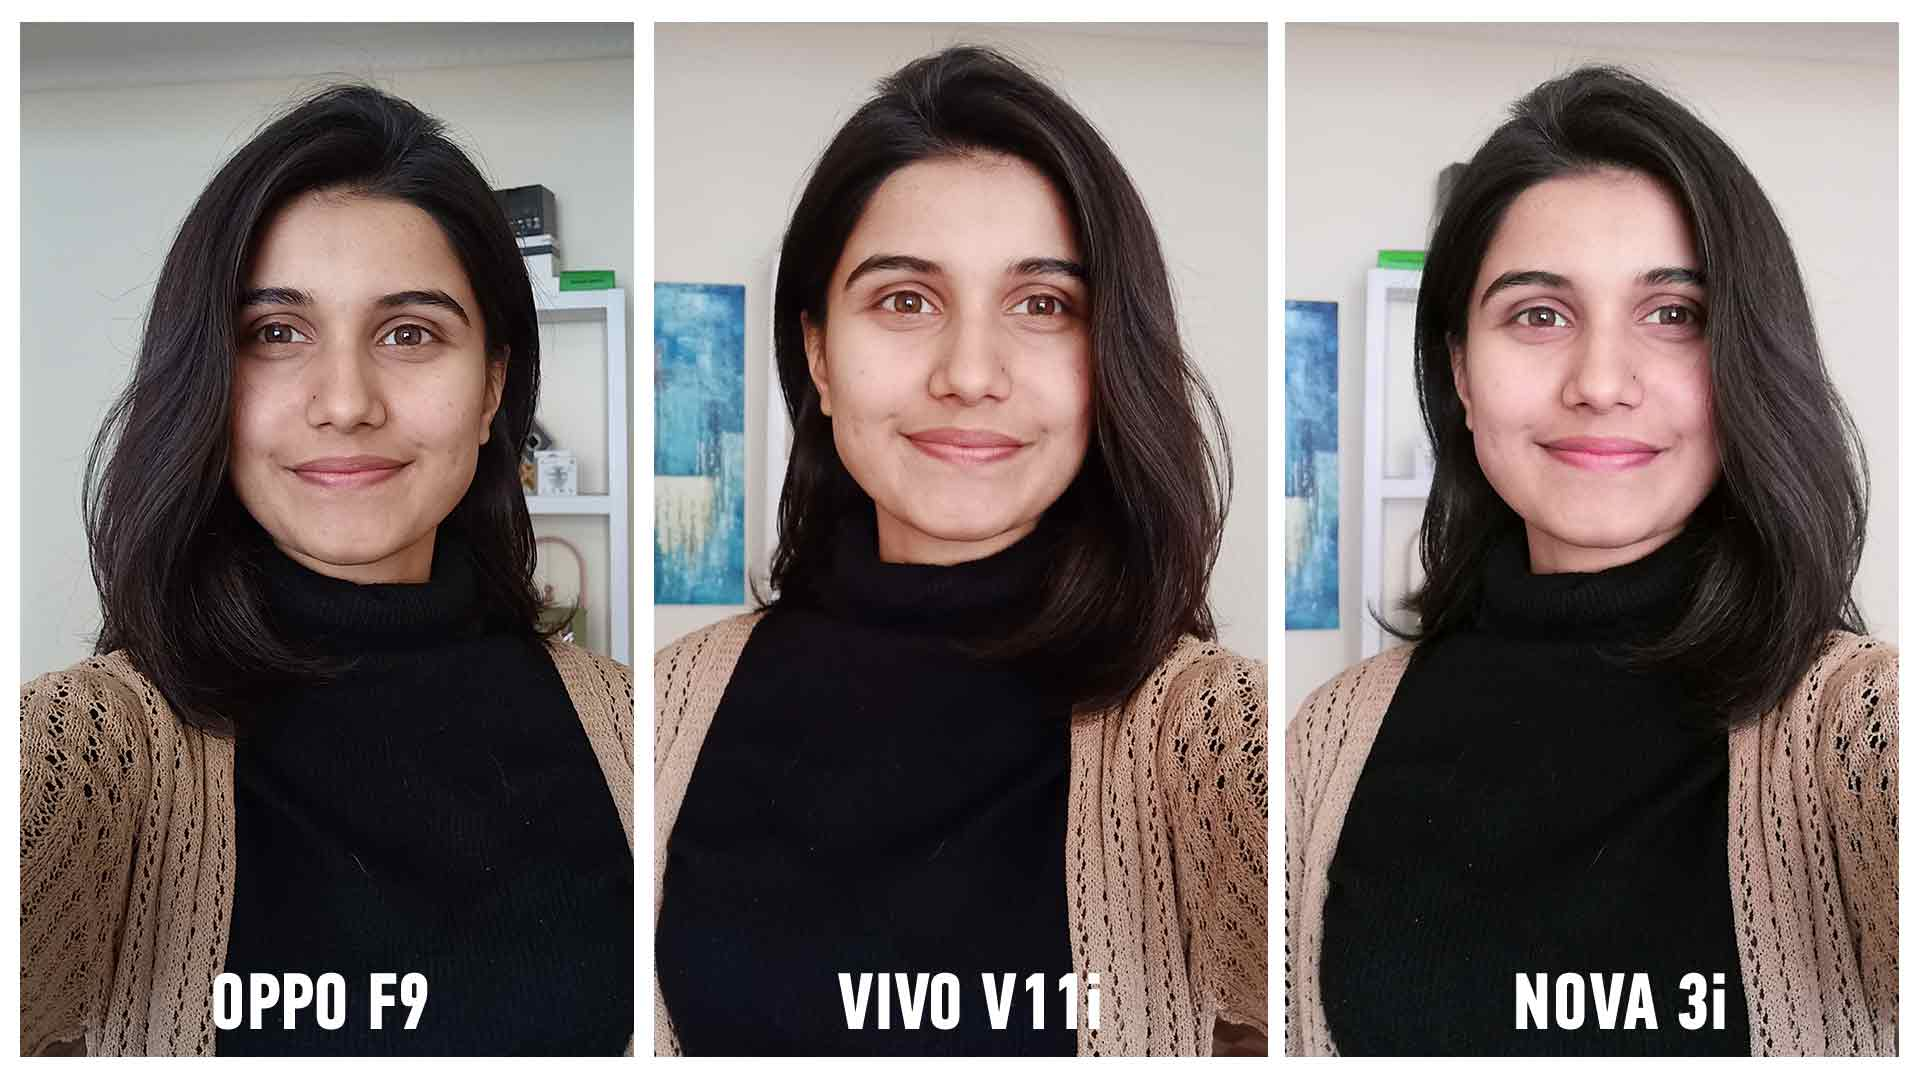 vivo v11 vs oppo f9 vs nova 3i selfie camera comparison